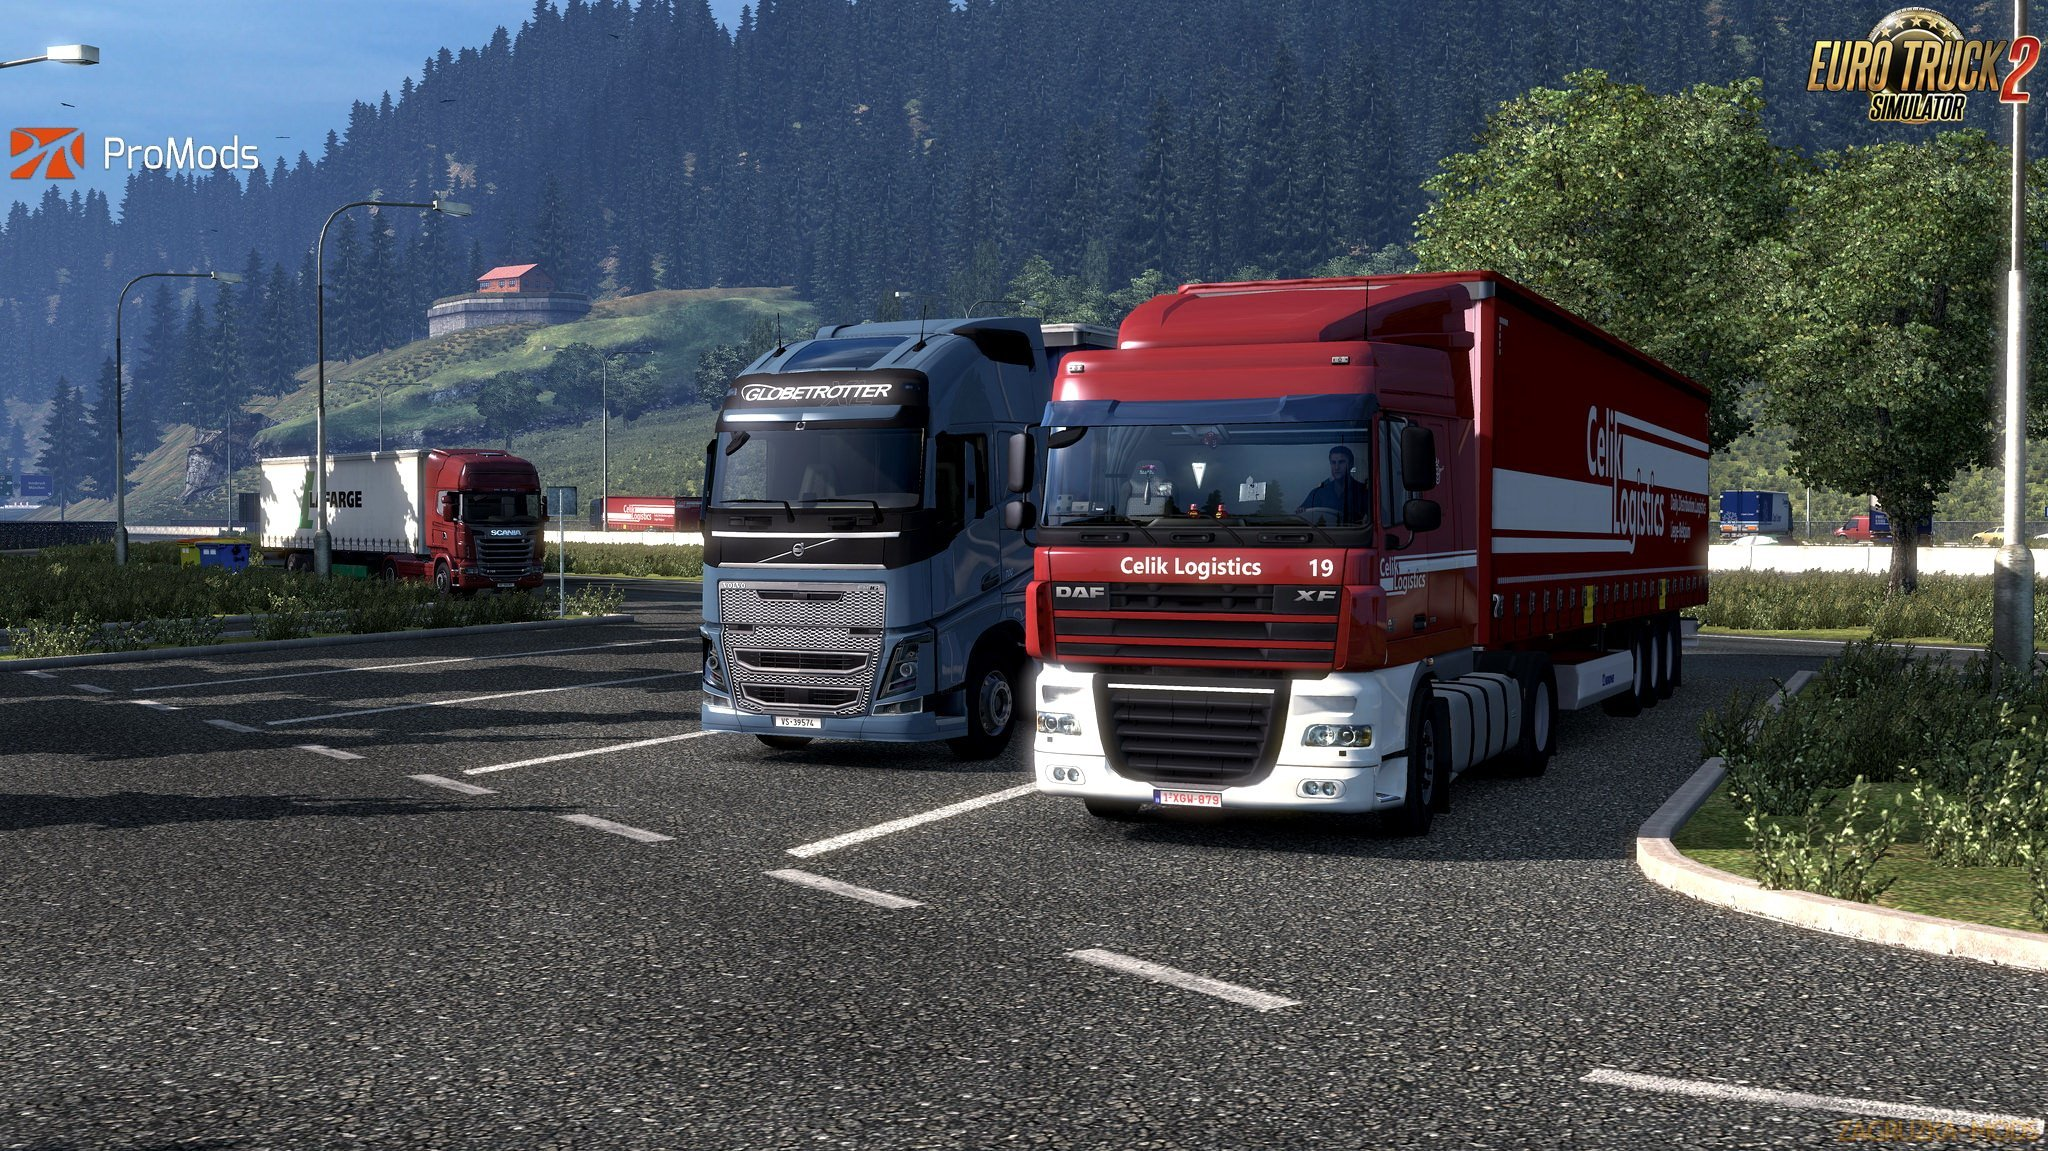 ProMods Map v2 25 (1 30 x) for ETS 2 » Simulator Mods | ETS2